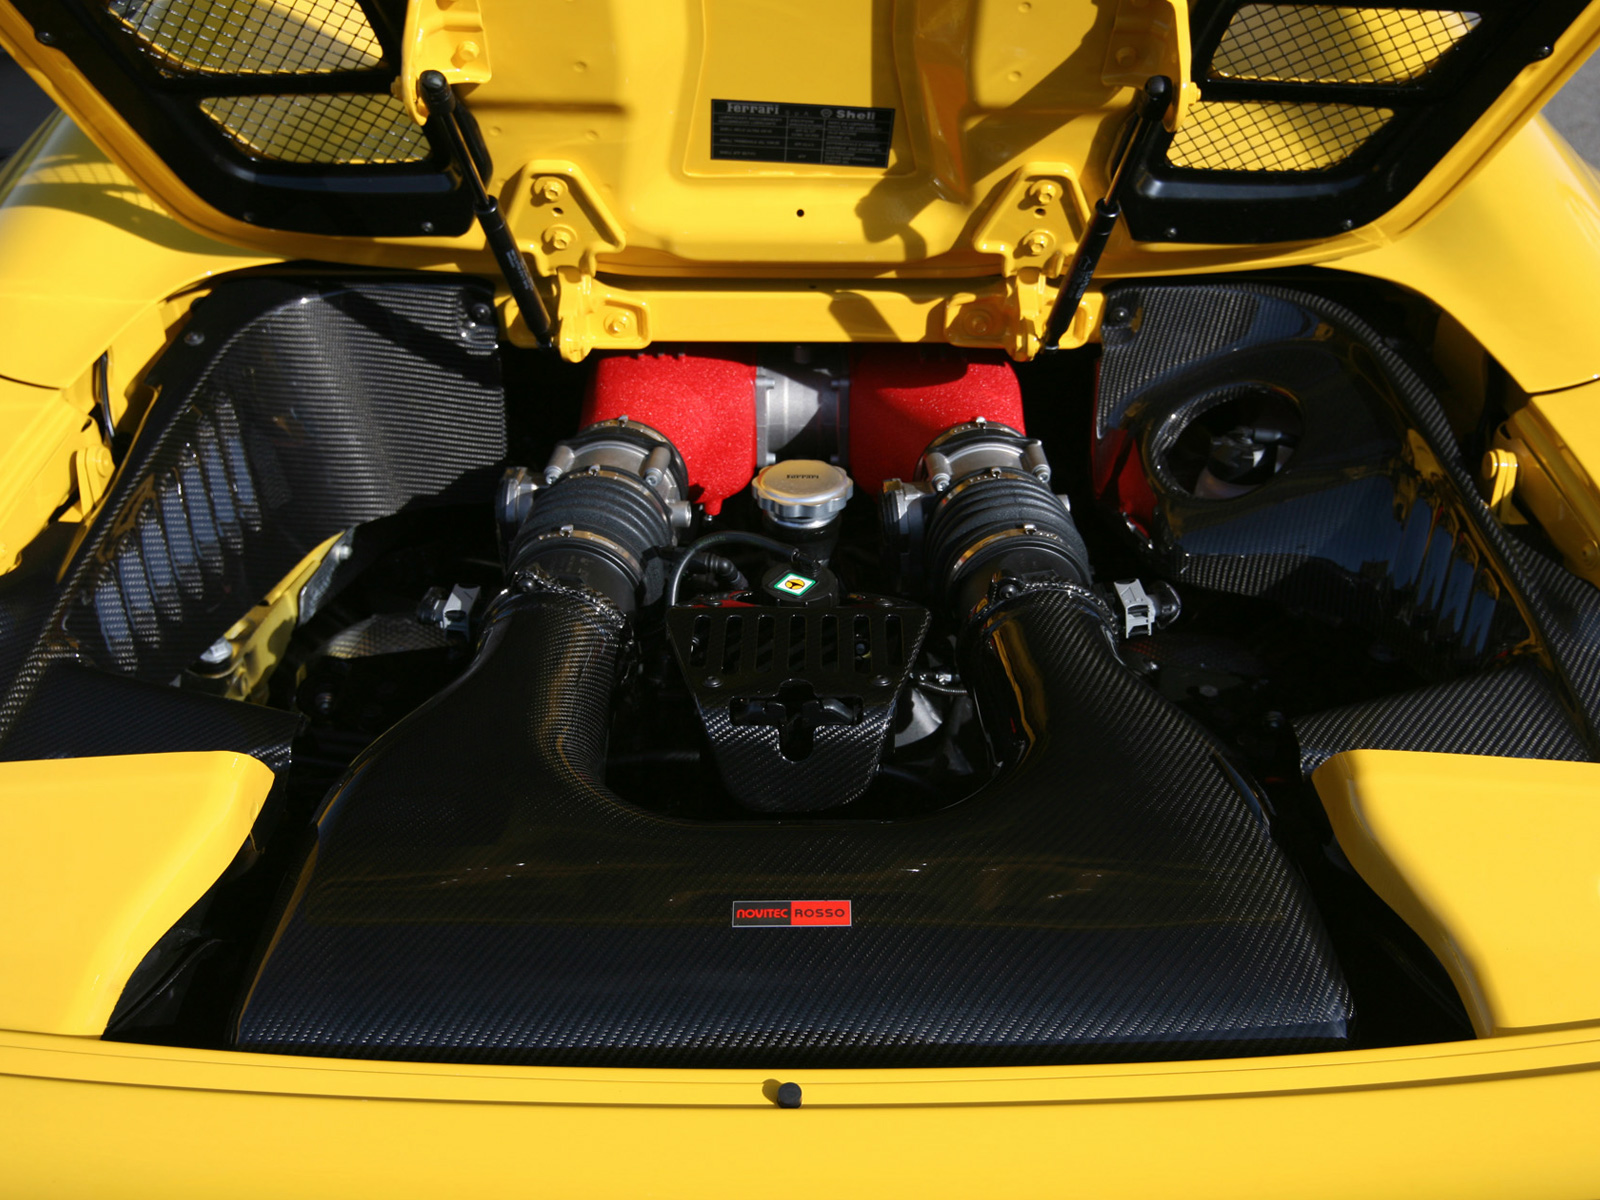 FERRARI 458 SPIDER engine